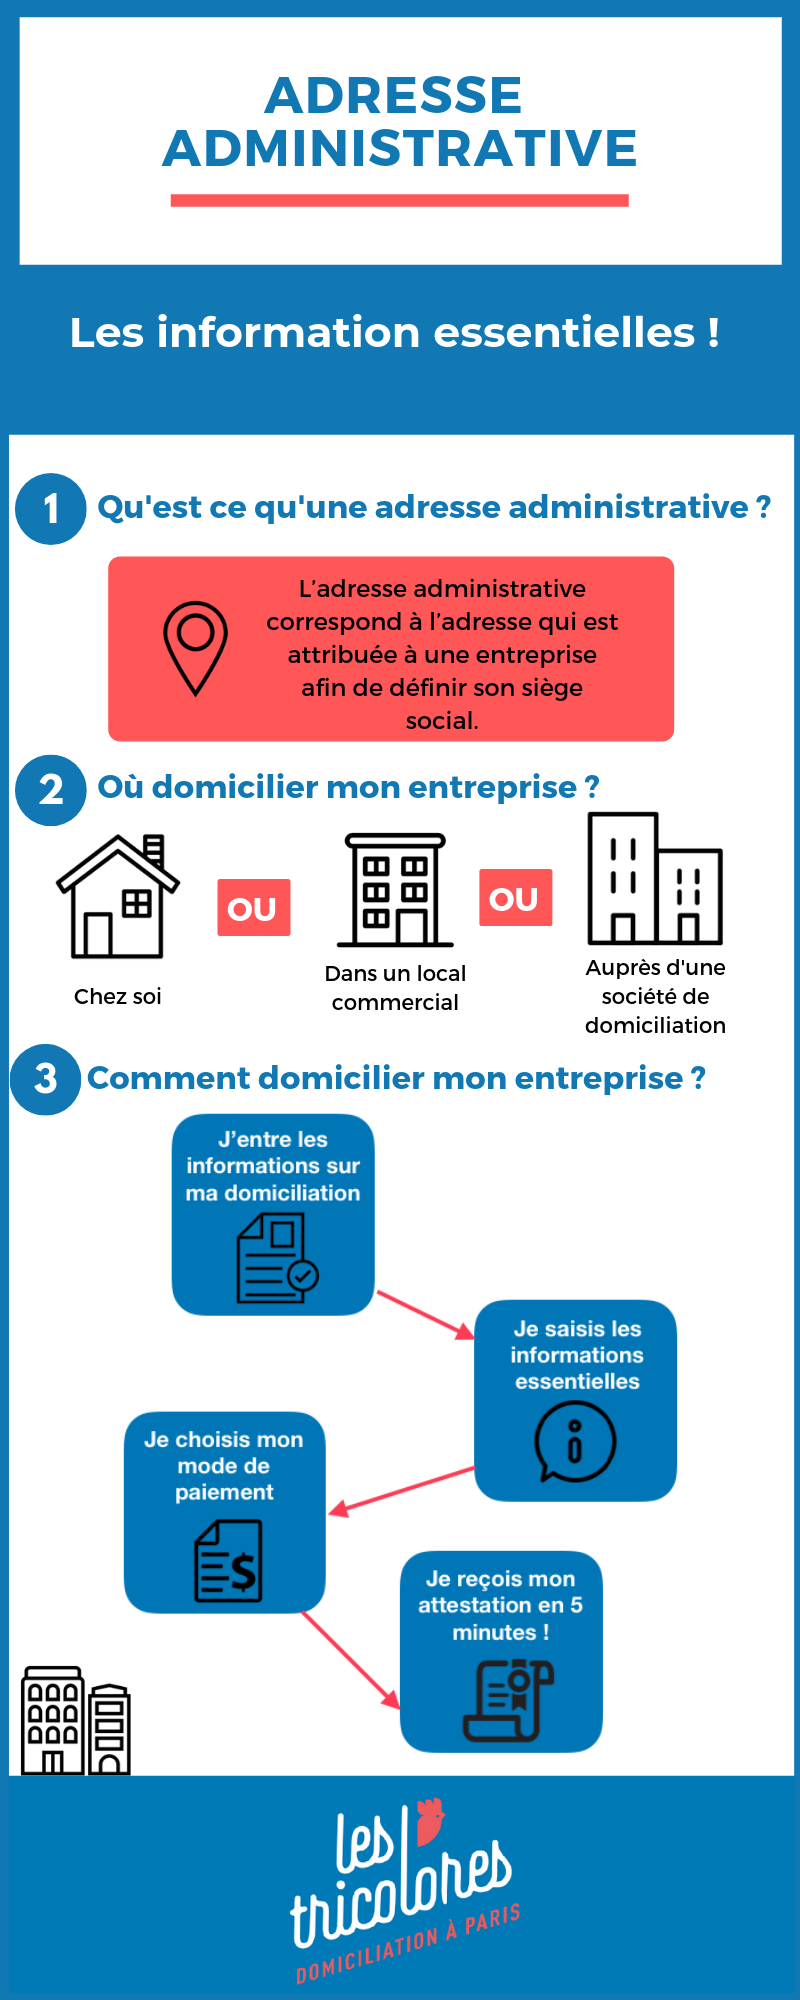 adresse administrative : guide pratique 2021